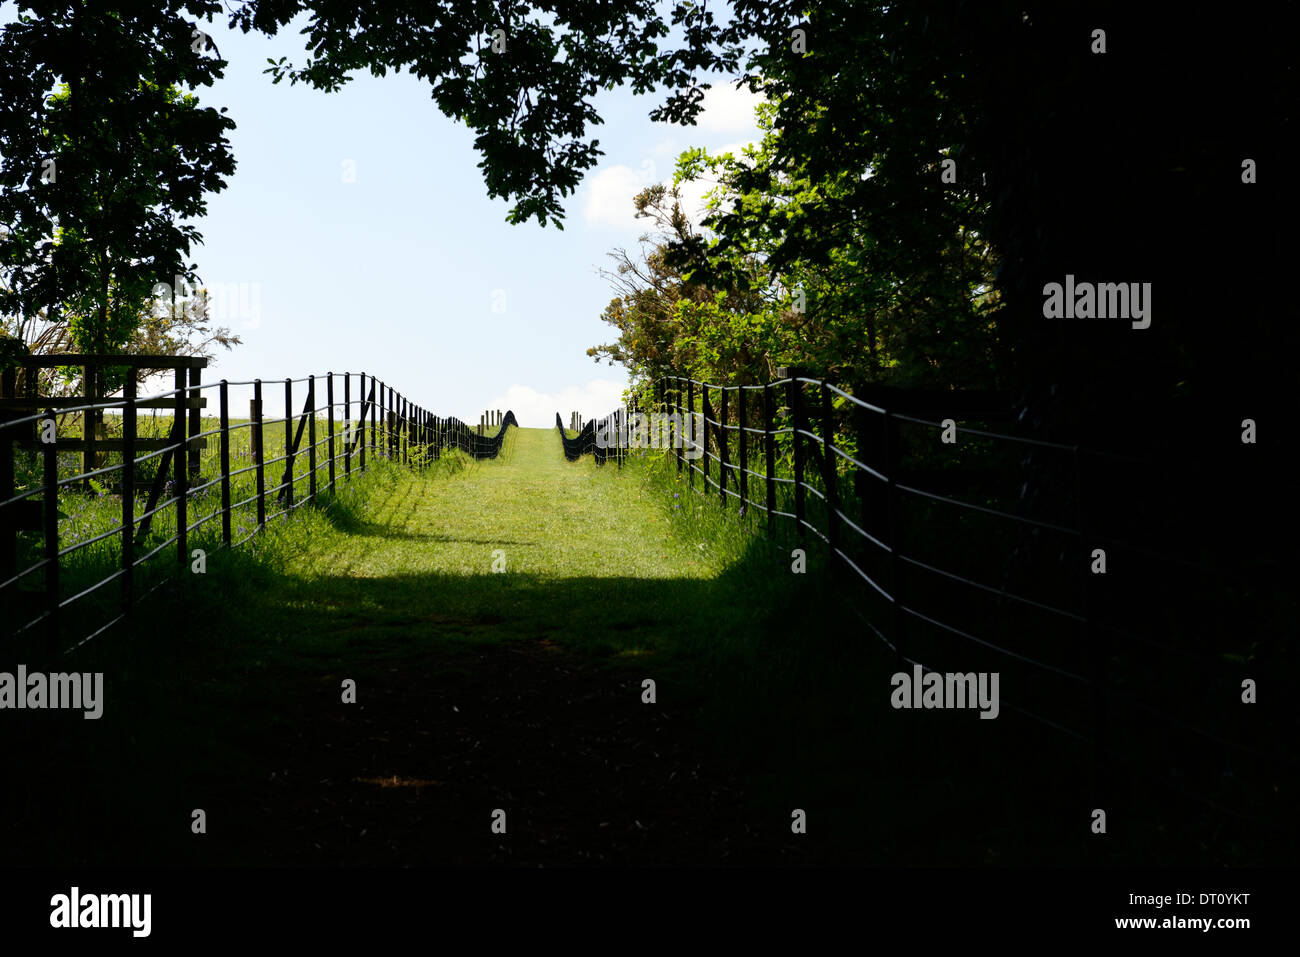 fenced fence walk trail path look looking view into sunlight from dark wood uphill up hill out of darkness - Stock Image